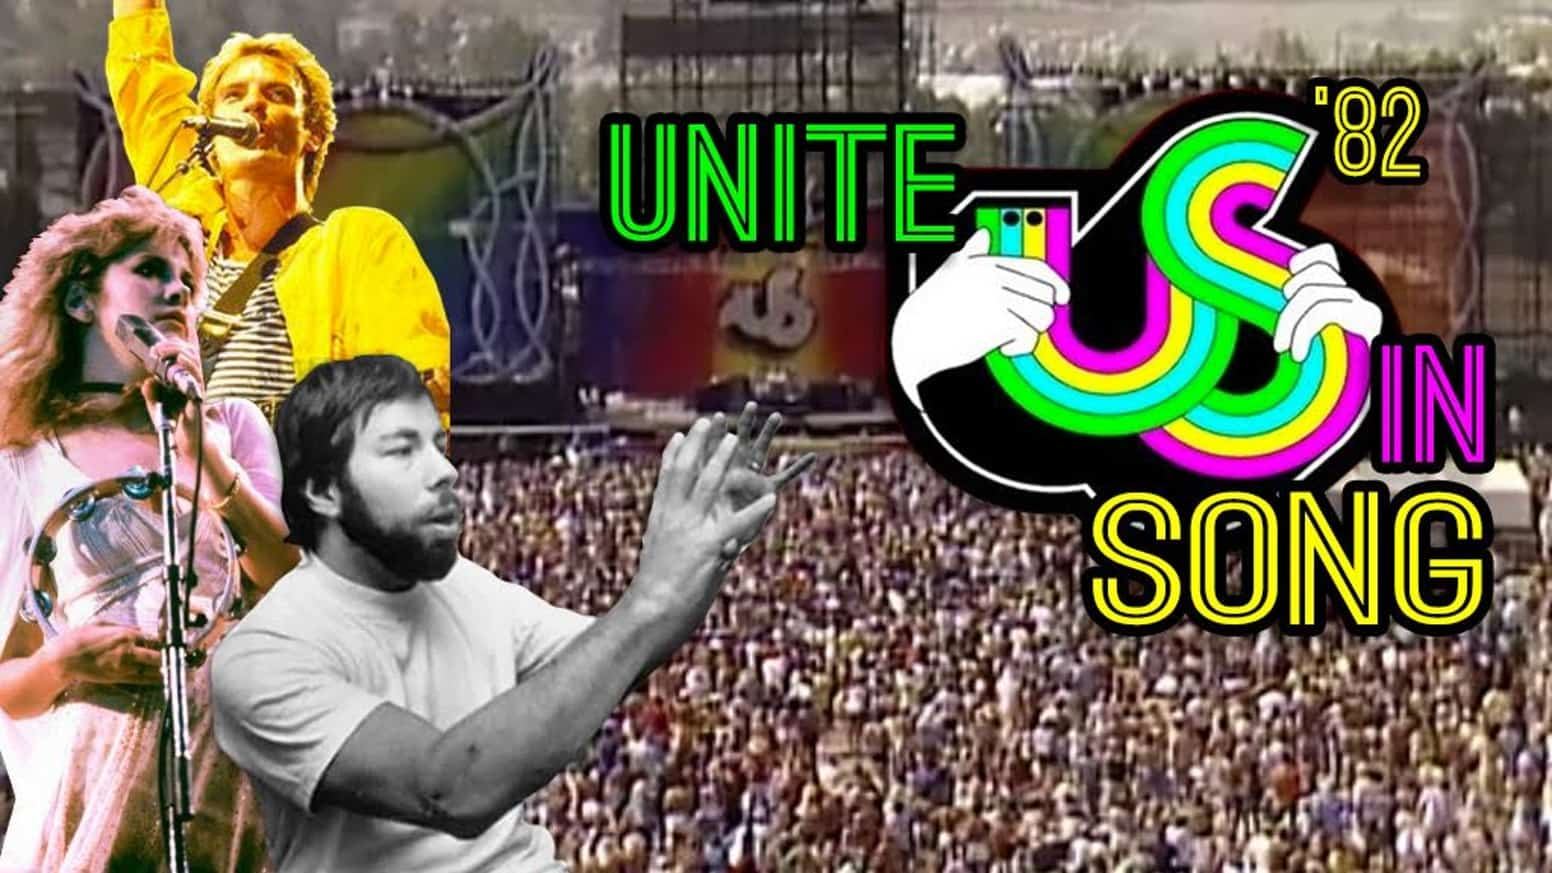 Unite US in Song